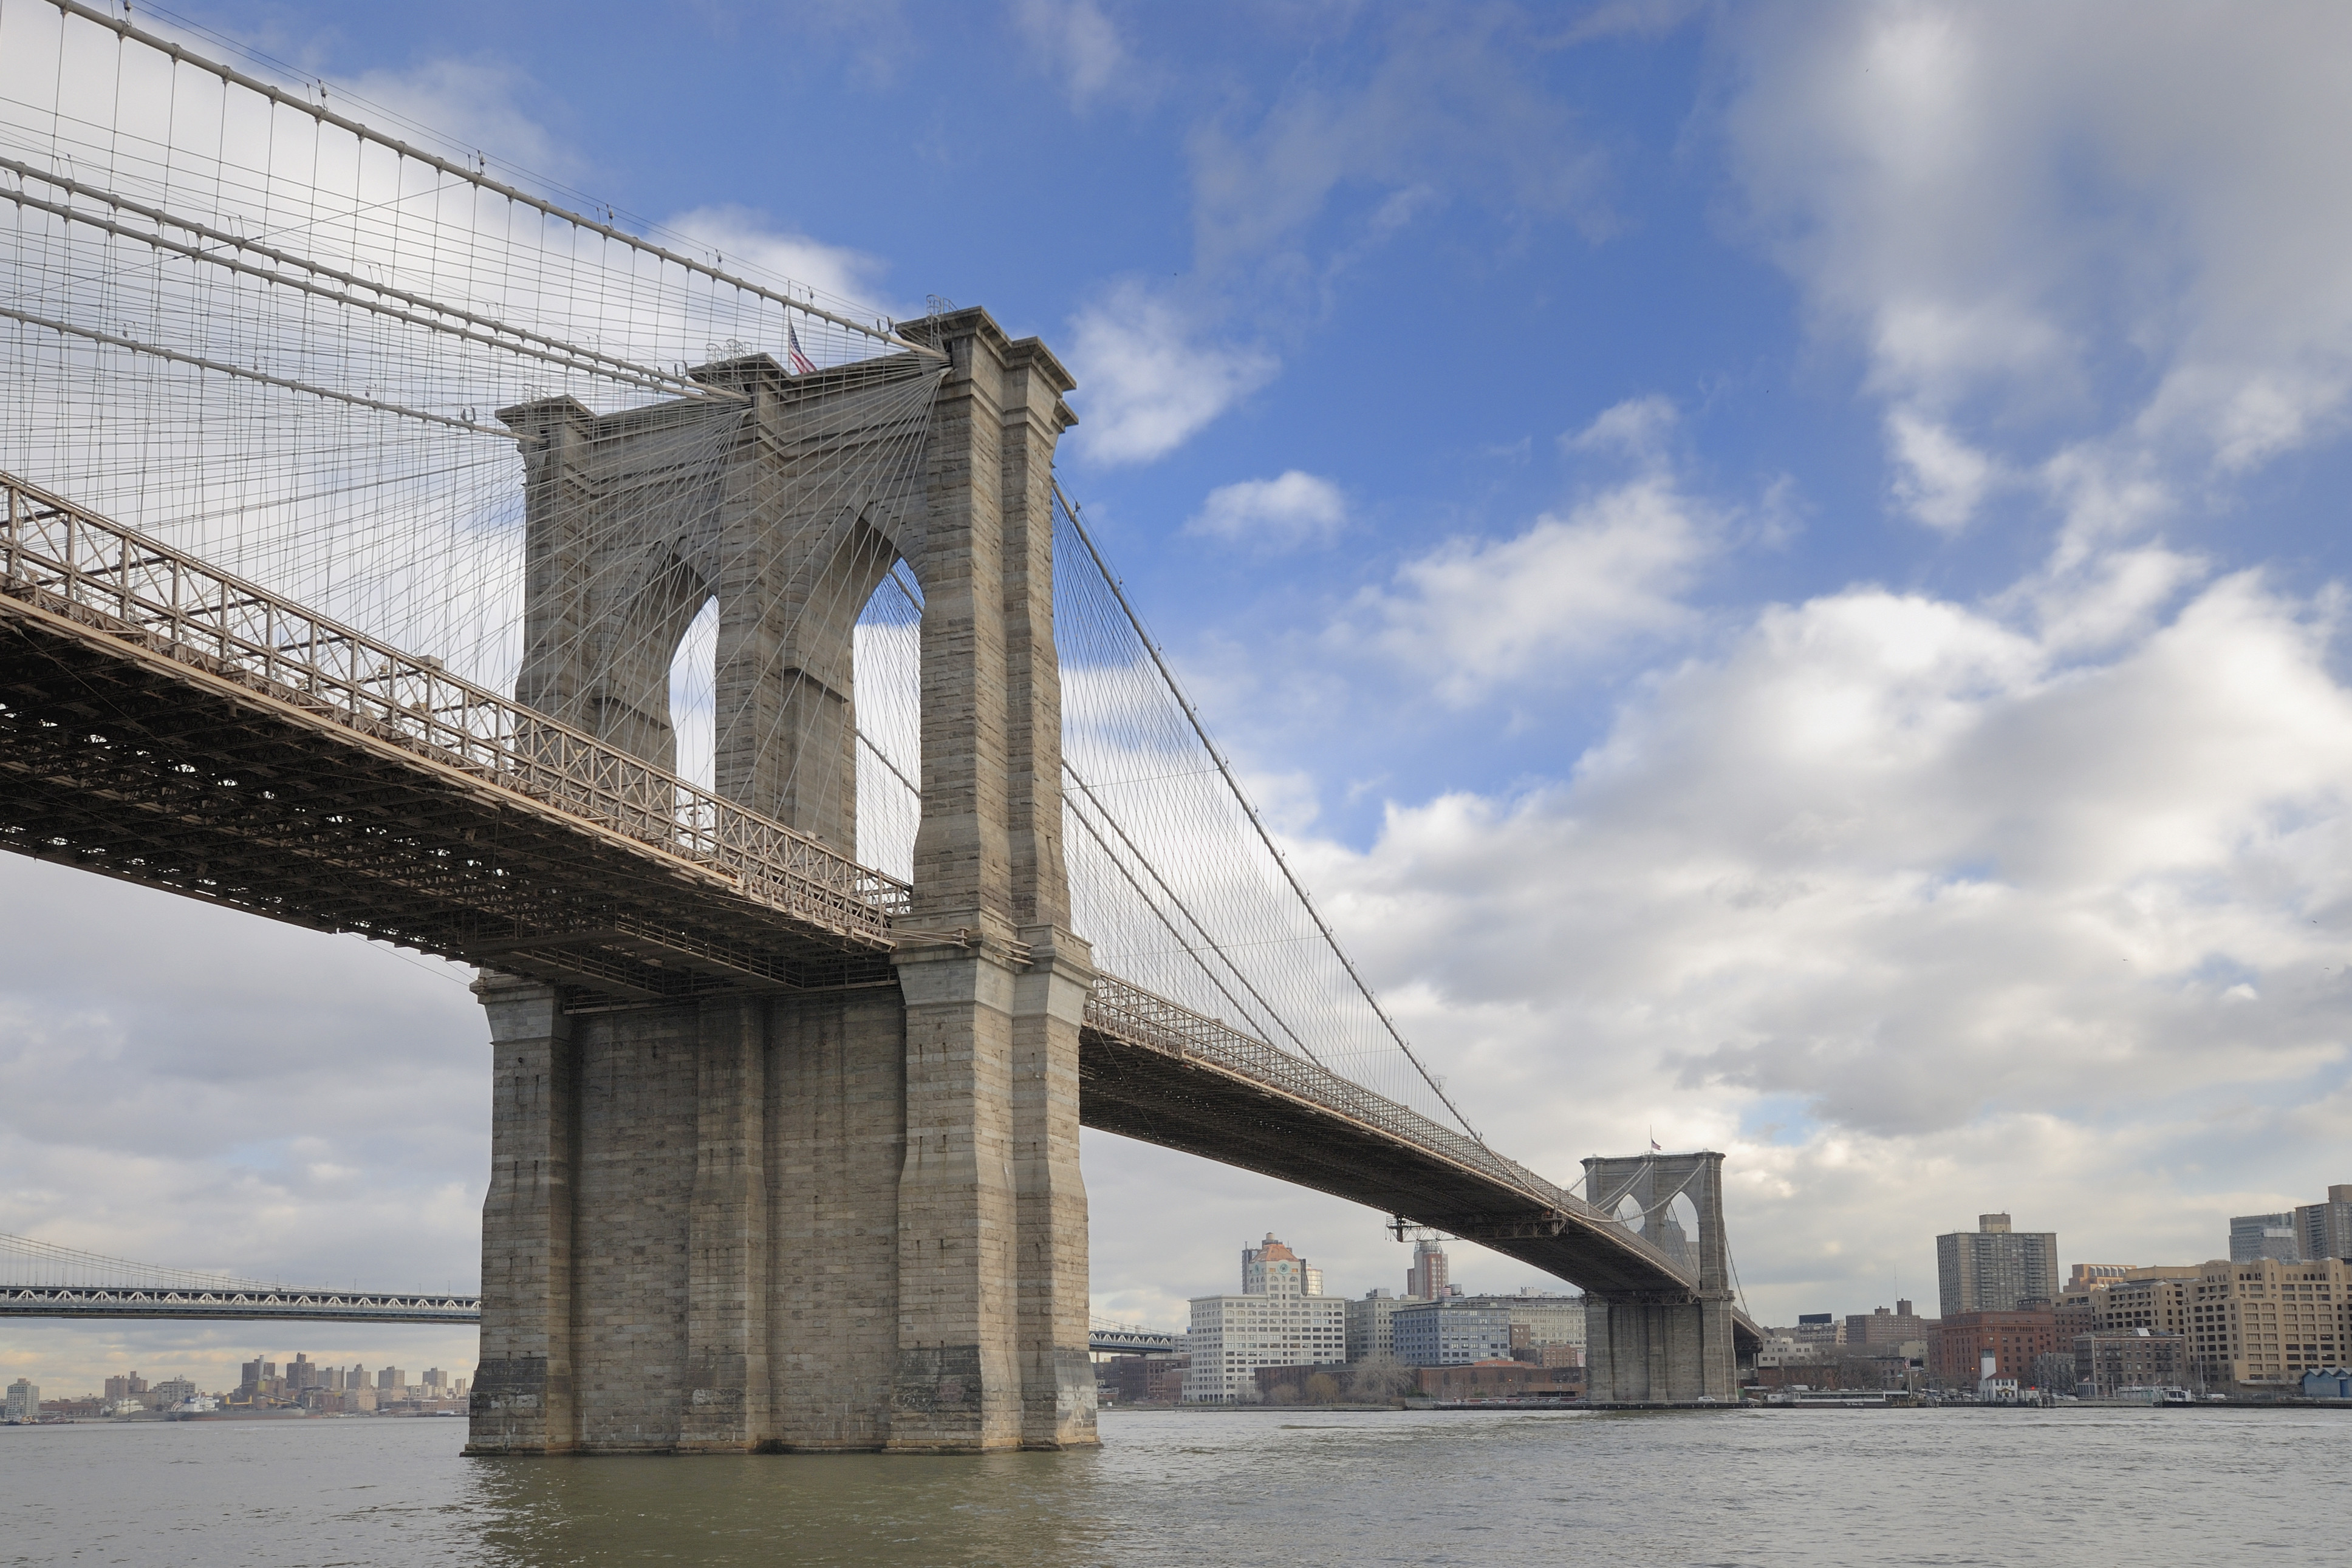 Off-duty cops save woman from jumping off Brooklyn Bridge